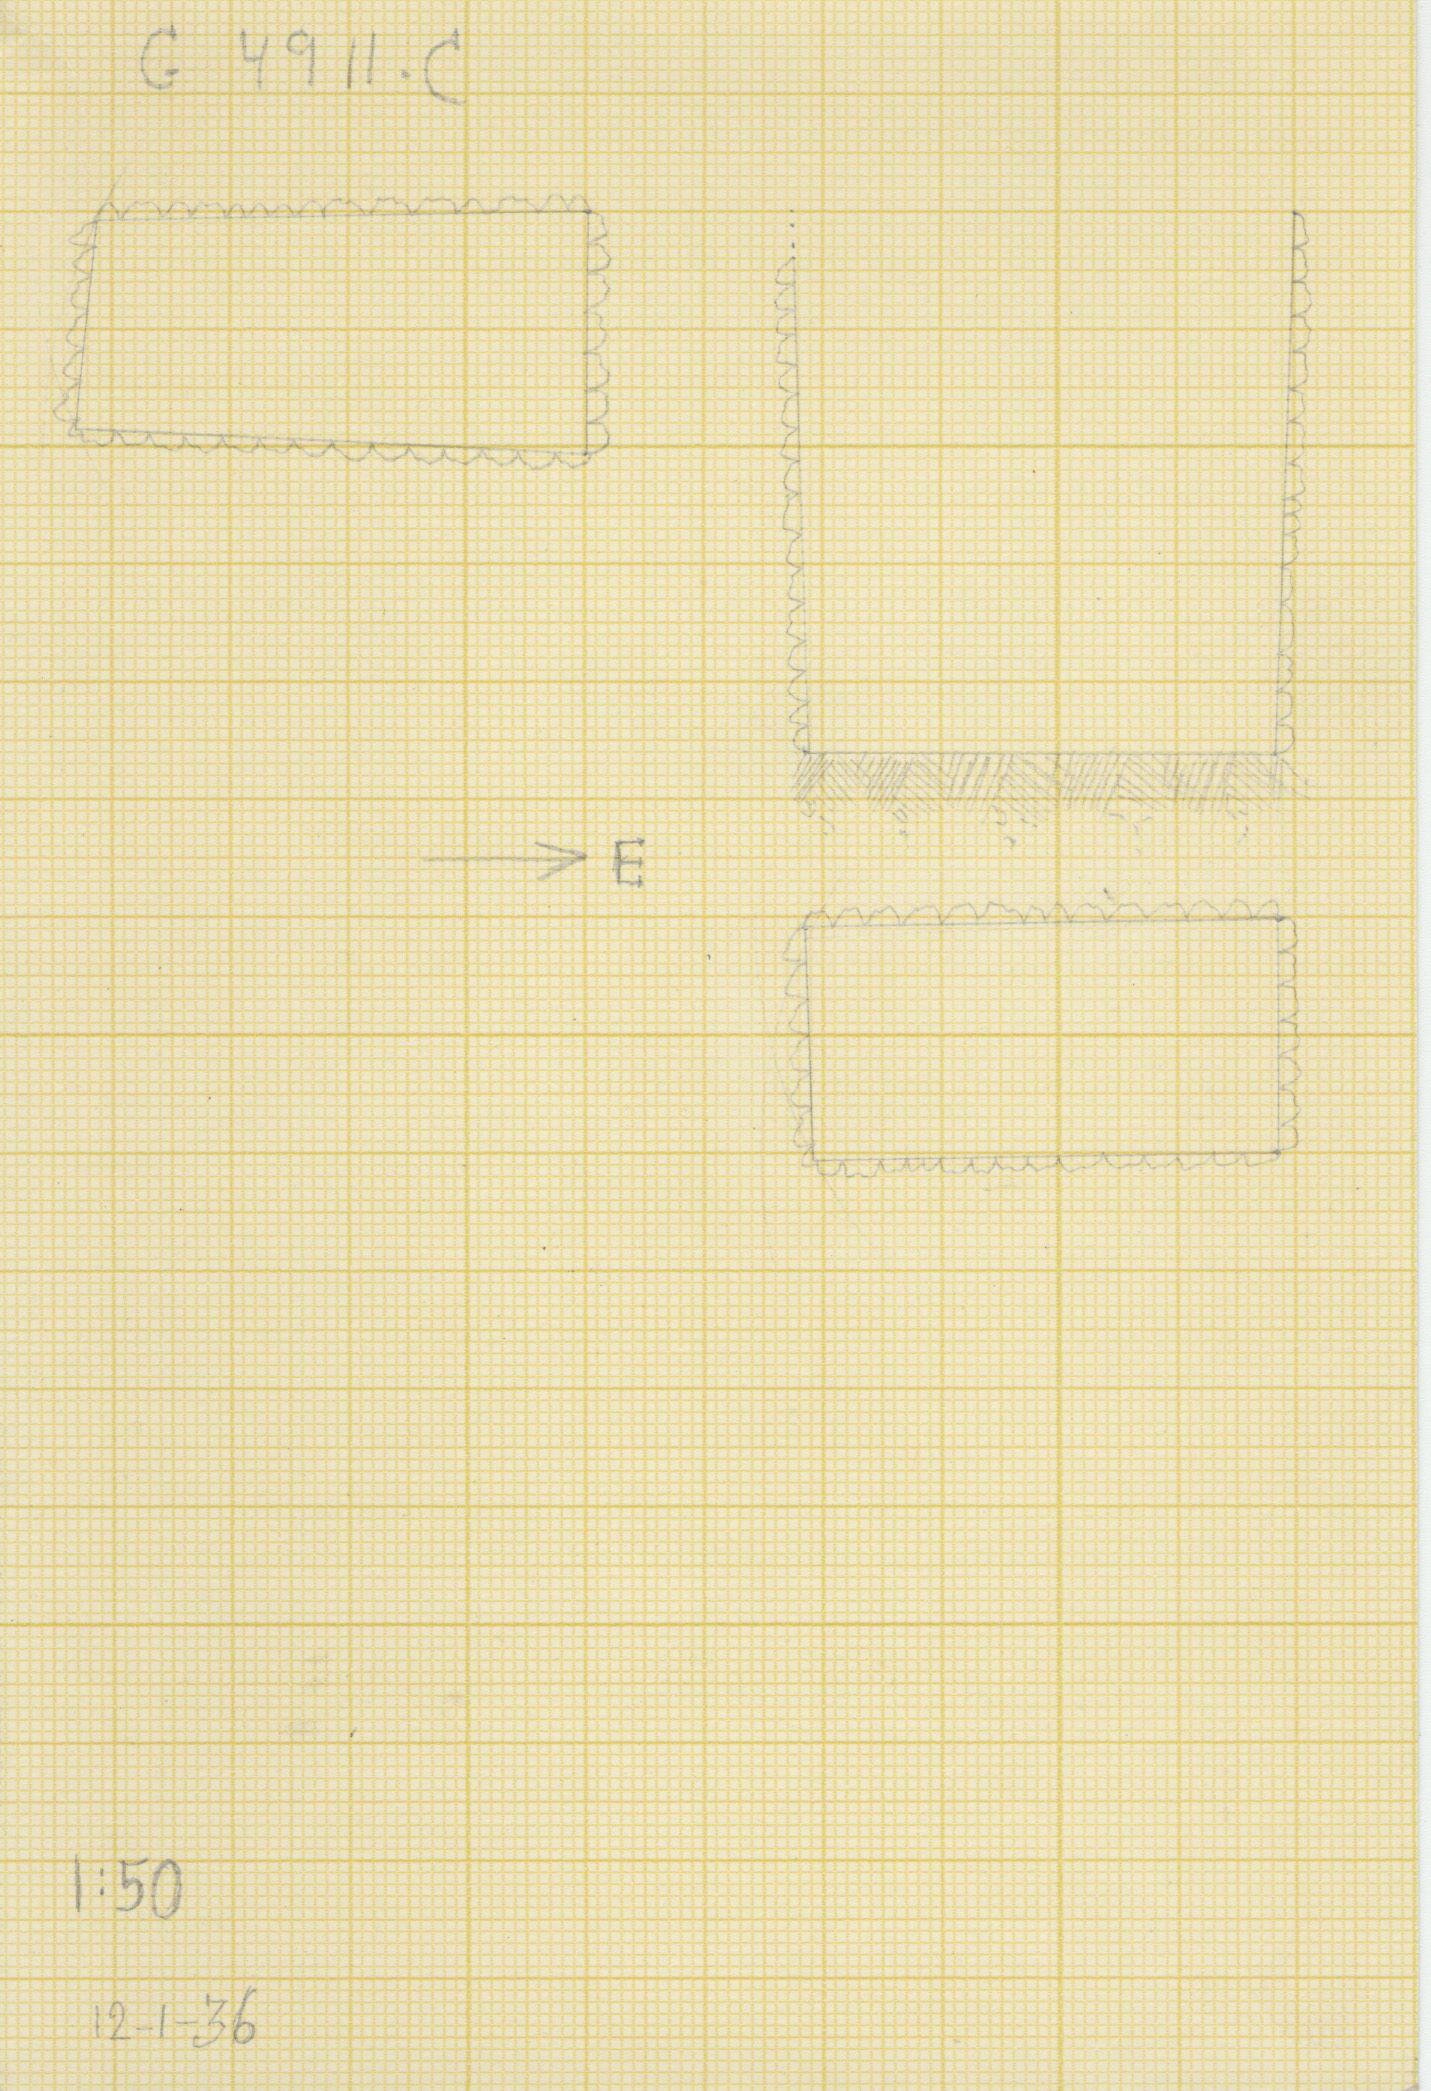 Maps and plans: G 4911, Shaft C